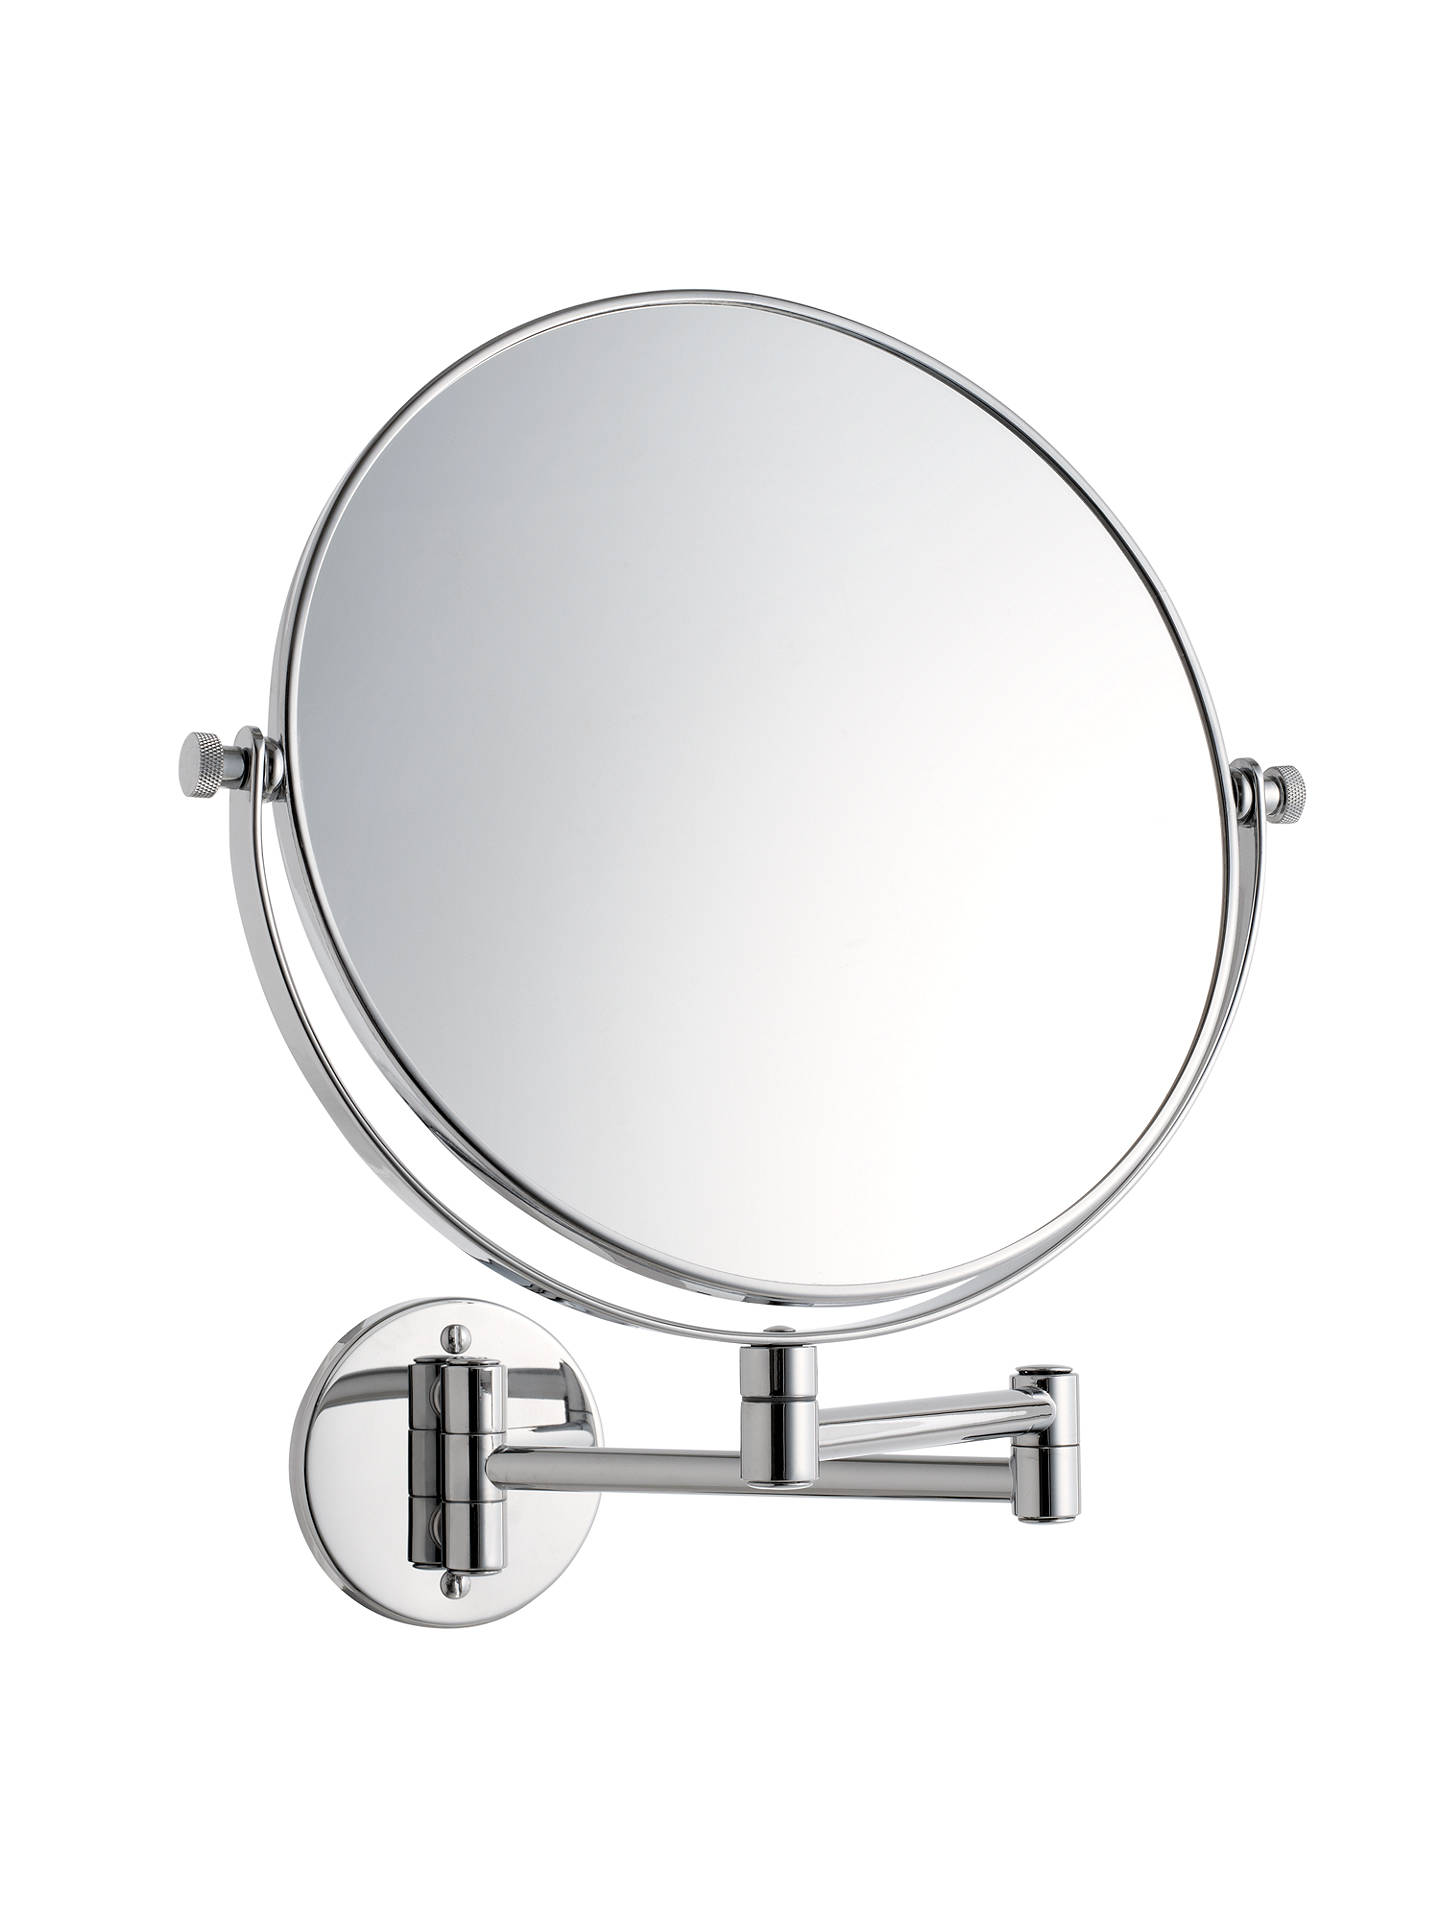 BuyJohn Lewis & Partners Extending Magnifying Bathroom Mirror, 25cm Online at johnlewis.com